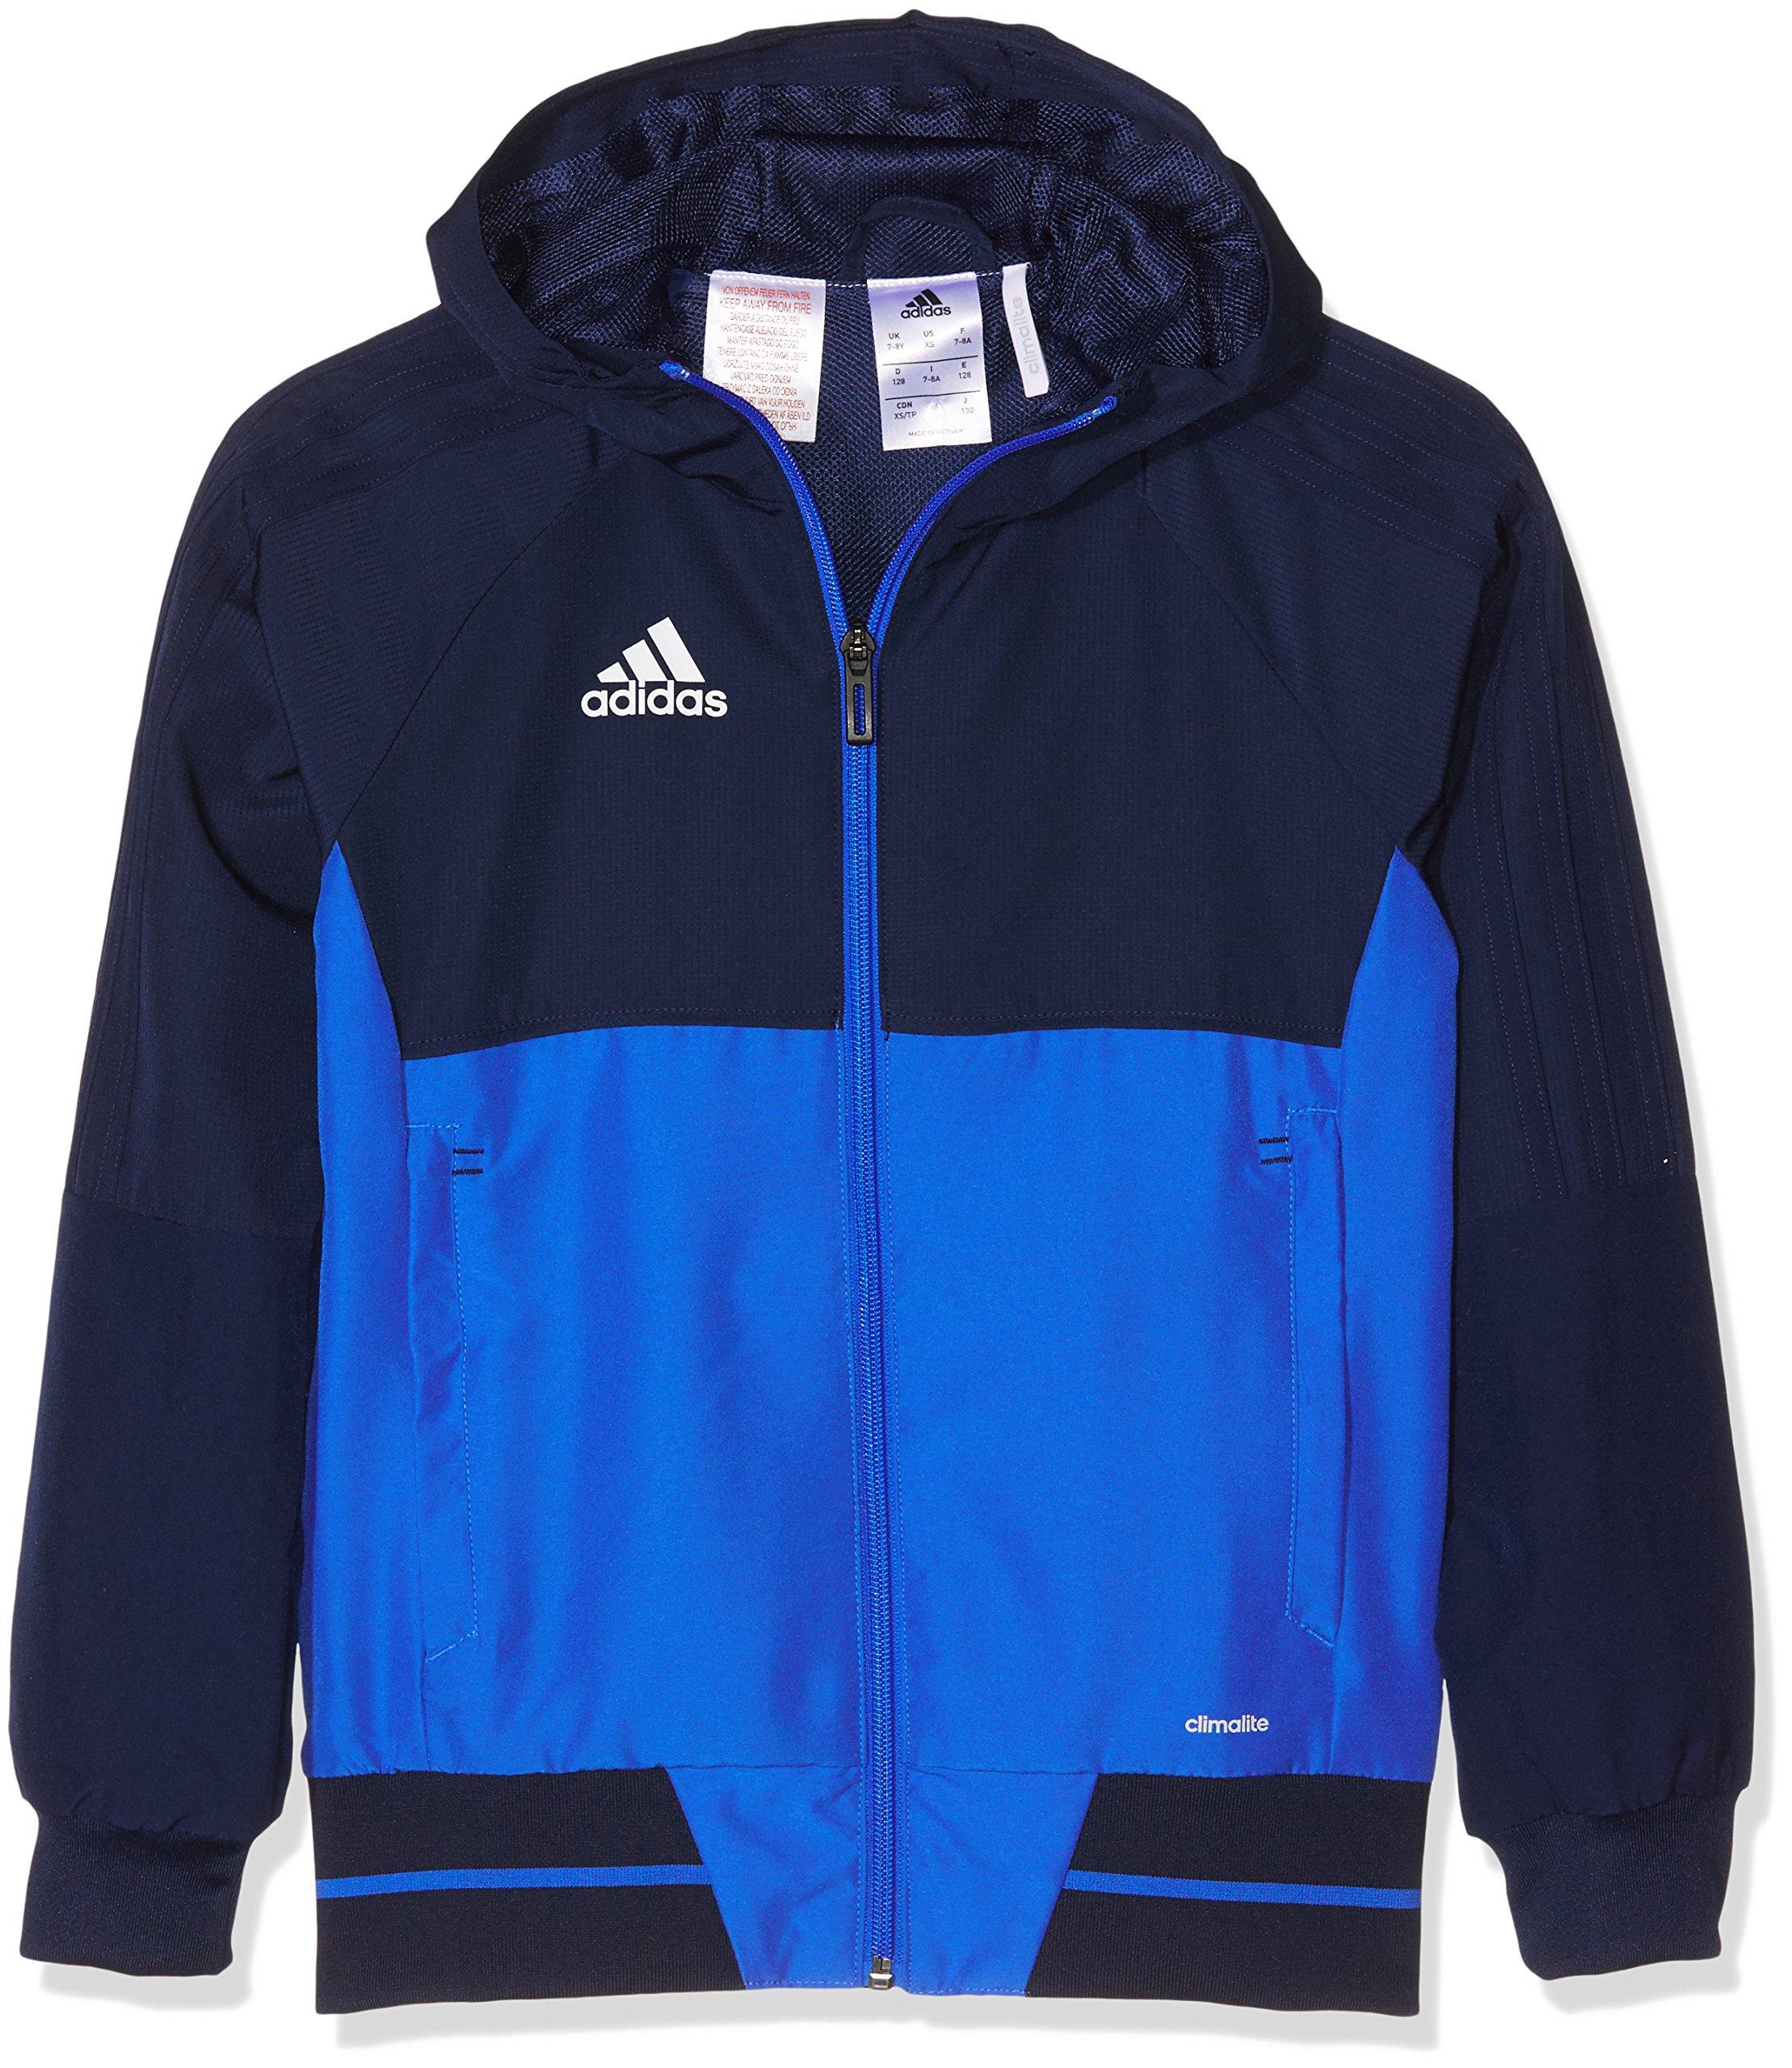 adidas Tiro 17 Plain Presentation Jacket - Youth - Navy/Royal - Age 9-10